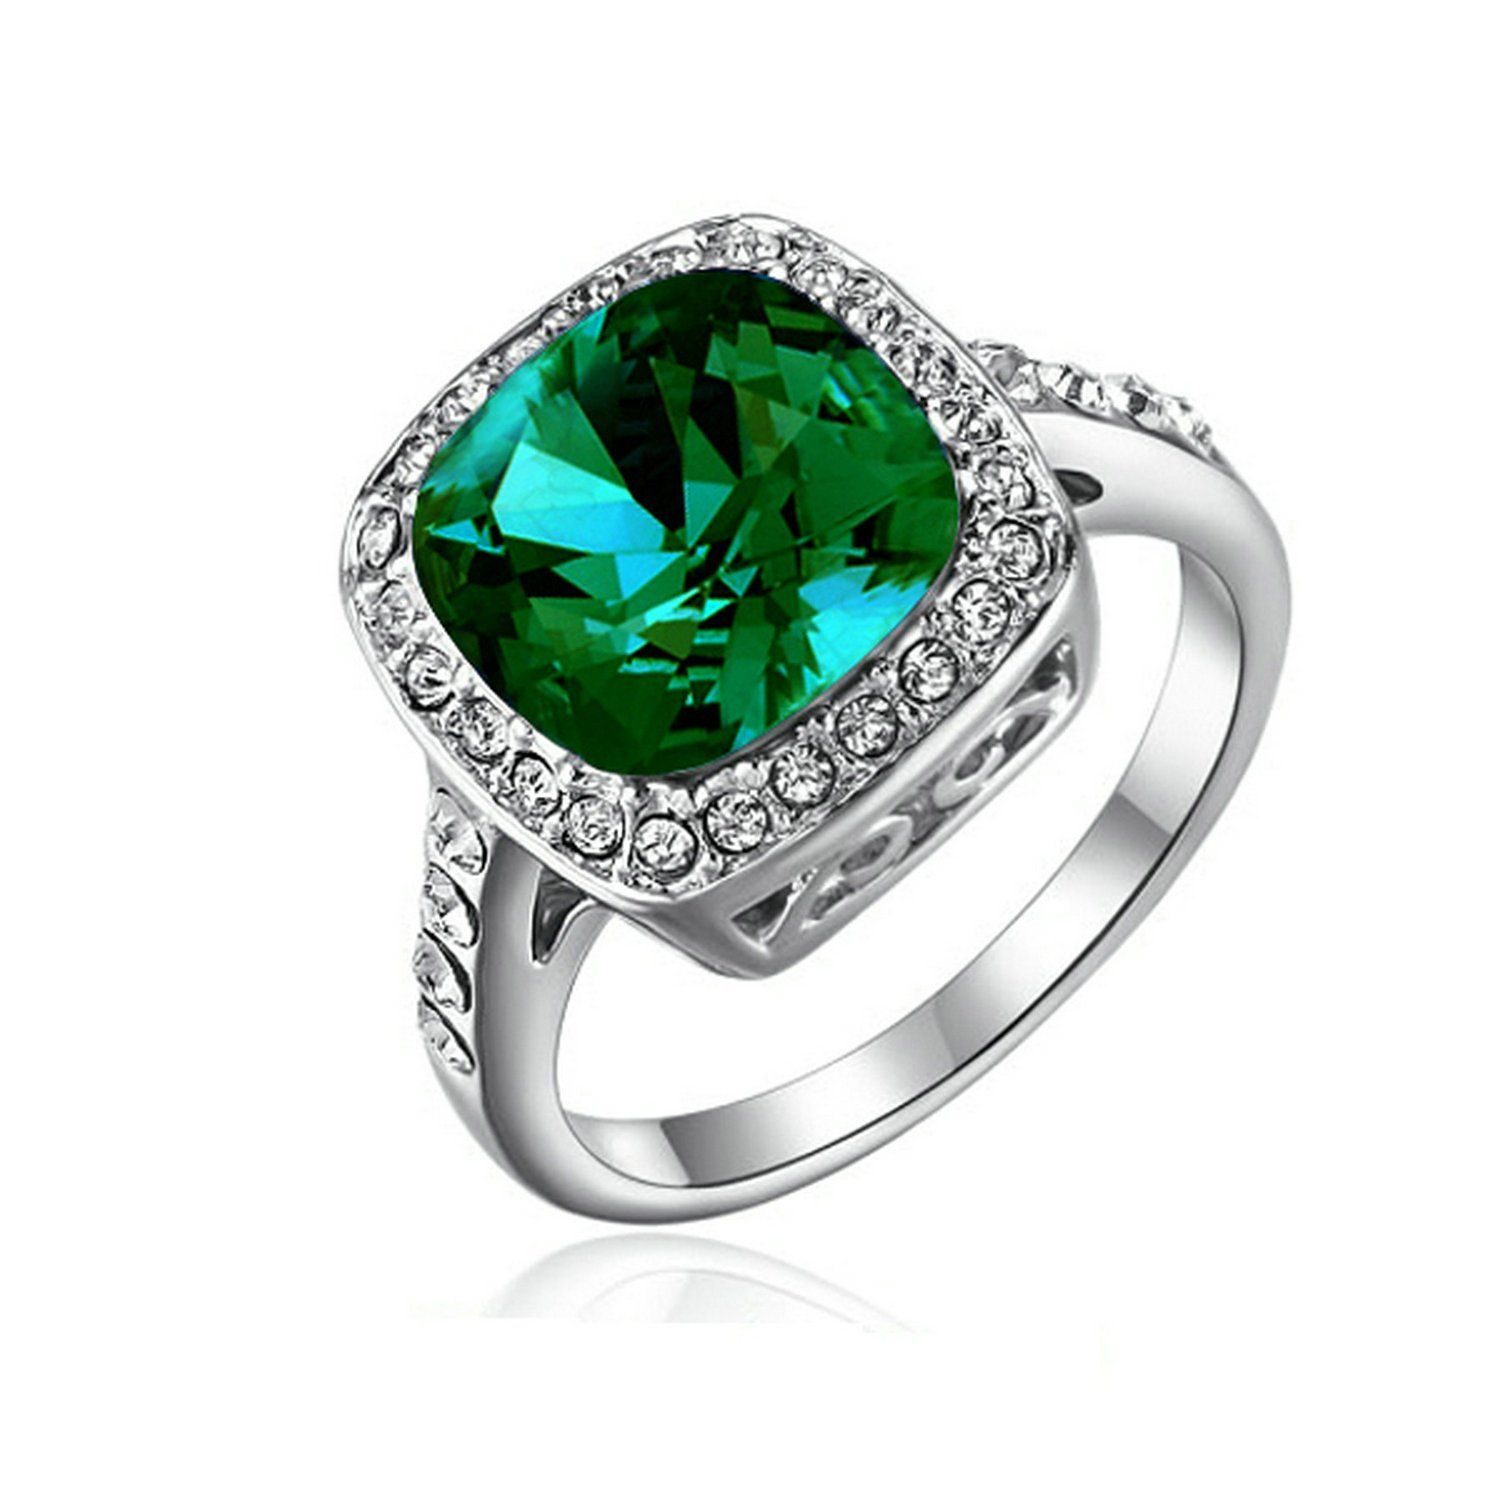 Amazon.com: [Retro Series] Yoursfs 1.5ct Emerald Green Gemstone with Austrian Crystal 18k White Gold Plated Valentine's Day Gift Ring: Jewelry